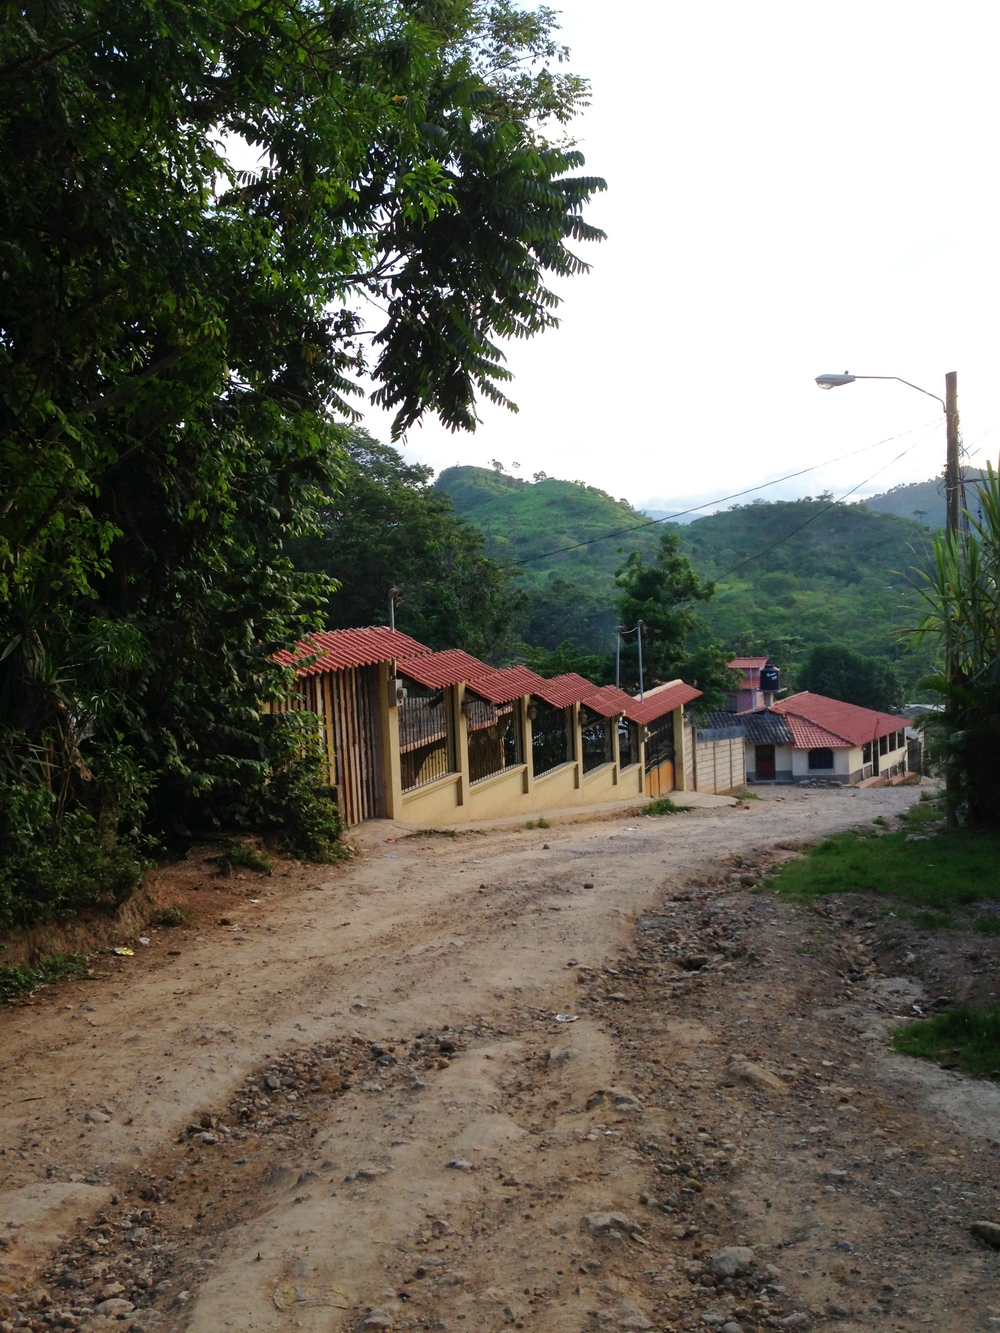 A village just outside Copán Ruinas